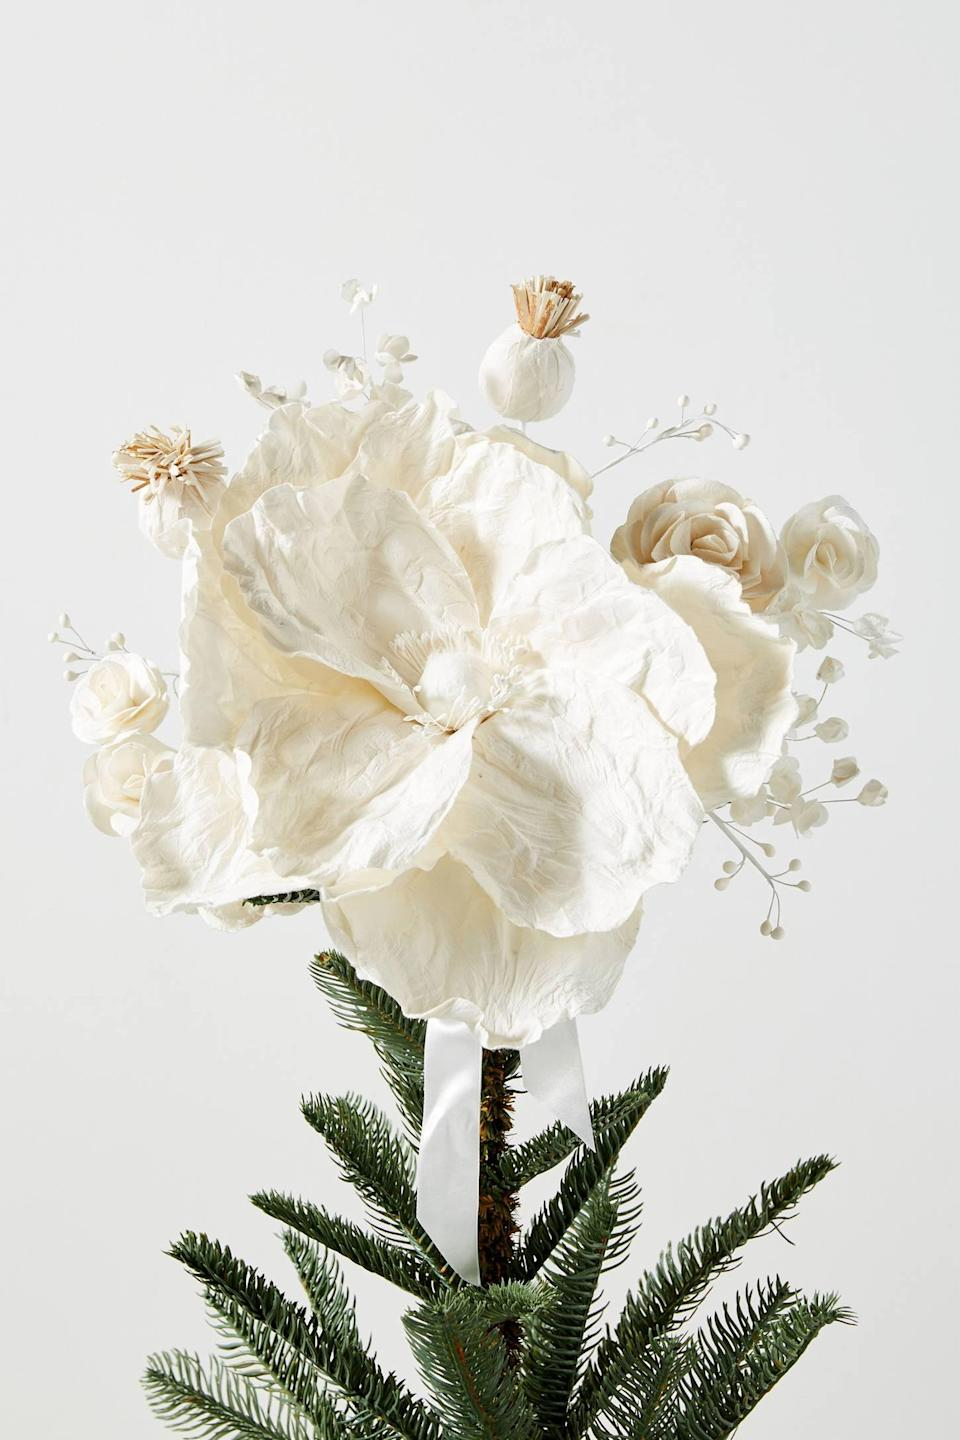 """<p>Give your tree a gorgeous finishing touch with the <a href=""""https://www.popsugar.com/buy/Mulberry-Paper-Flower-Tree-Topper-490483?p_name=Mulberry%20Paper%20Flower%20Tree%20Topper&retailer=anthropologie.com&pid=490483&price=78&evar1=casa%3Aus&evar9=46615300&evar98=https%3A%2F%2Fwww.popsugar.com%2Fhome%2Fphoto-gallery%2F46615300%2Fimage%2F46615353%2FMulberry-Paper-Flower-Tree-Topper&list1=shopping%2Canthropologie%2Choliday%2Cchristmas%2Cchristmas%20decorations%2Choliday%20decor%2Chome%20shopping&prop13=mobile&pdata=1"""" rel=""""nofollow noopener"""" class=""""link rapid-noclick-resp"""" target=""""_blank"""" data-ylk=""""slk:Mulberry Paper Flower Tree Topper"""">Mulberry Paper Flower Tree Topper</a> ($78).</p>"""